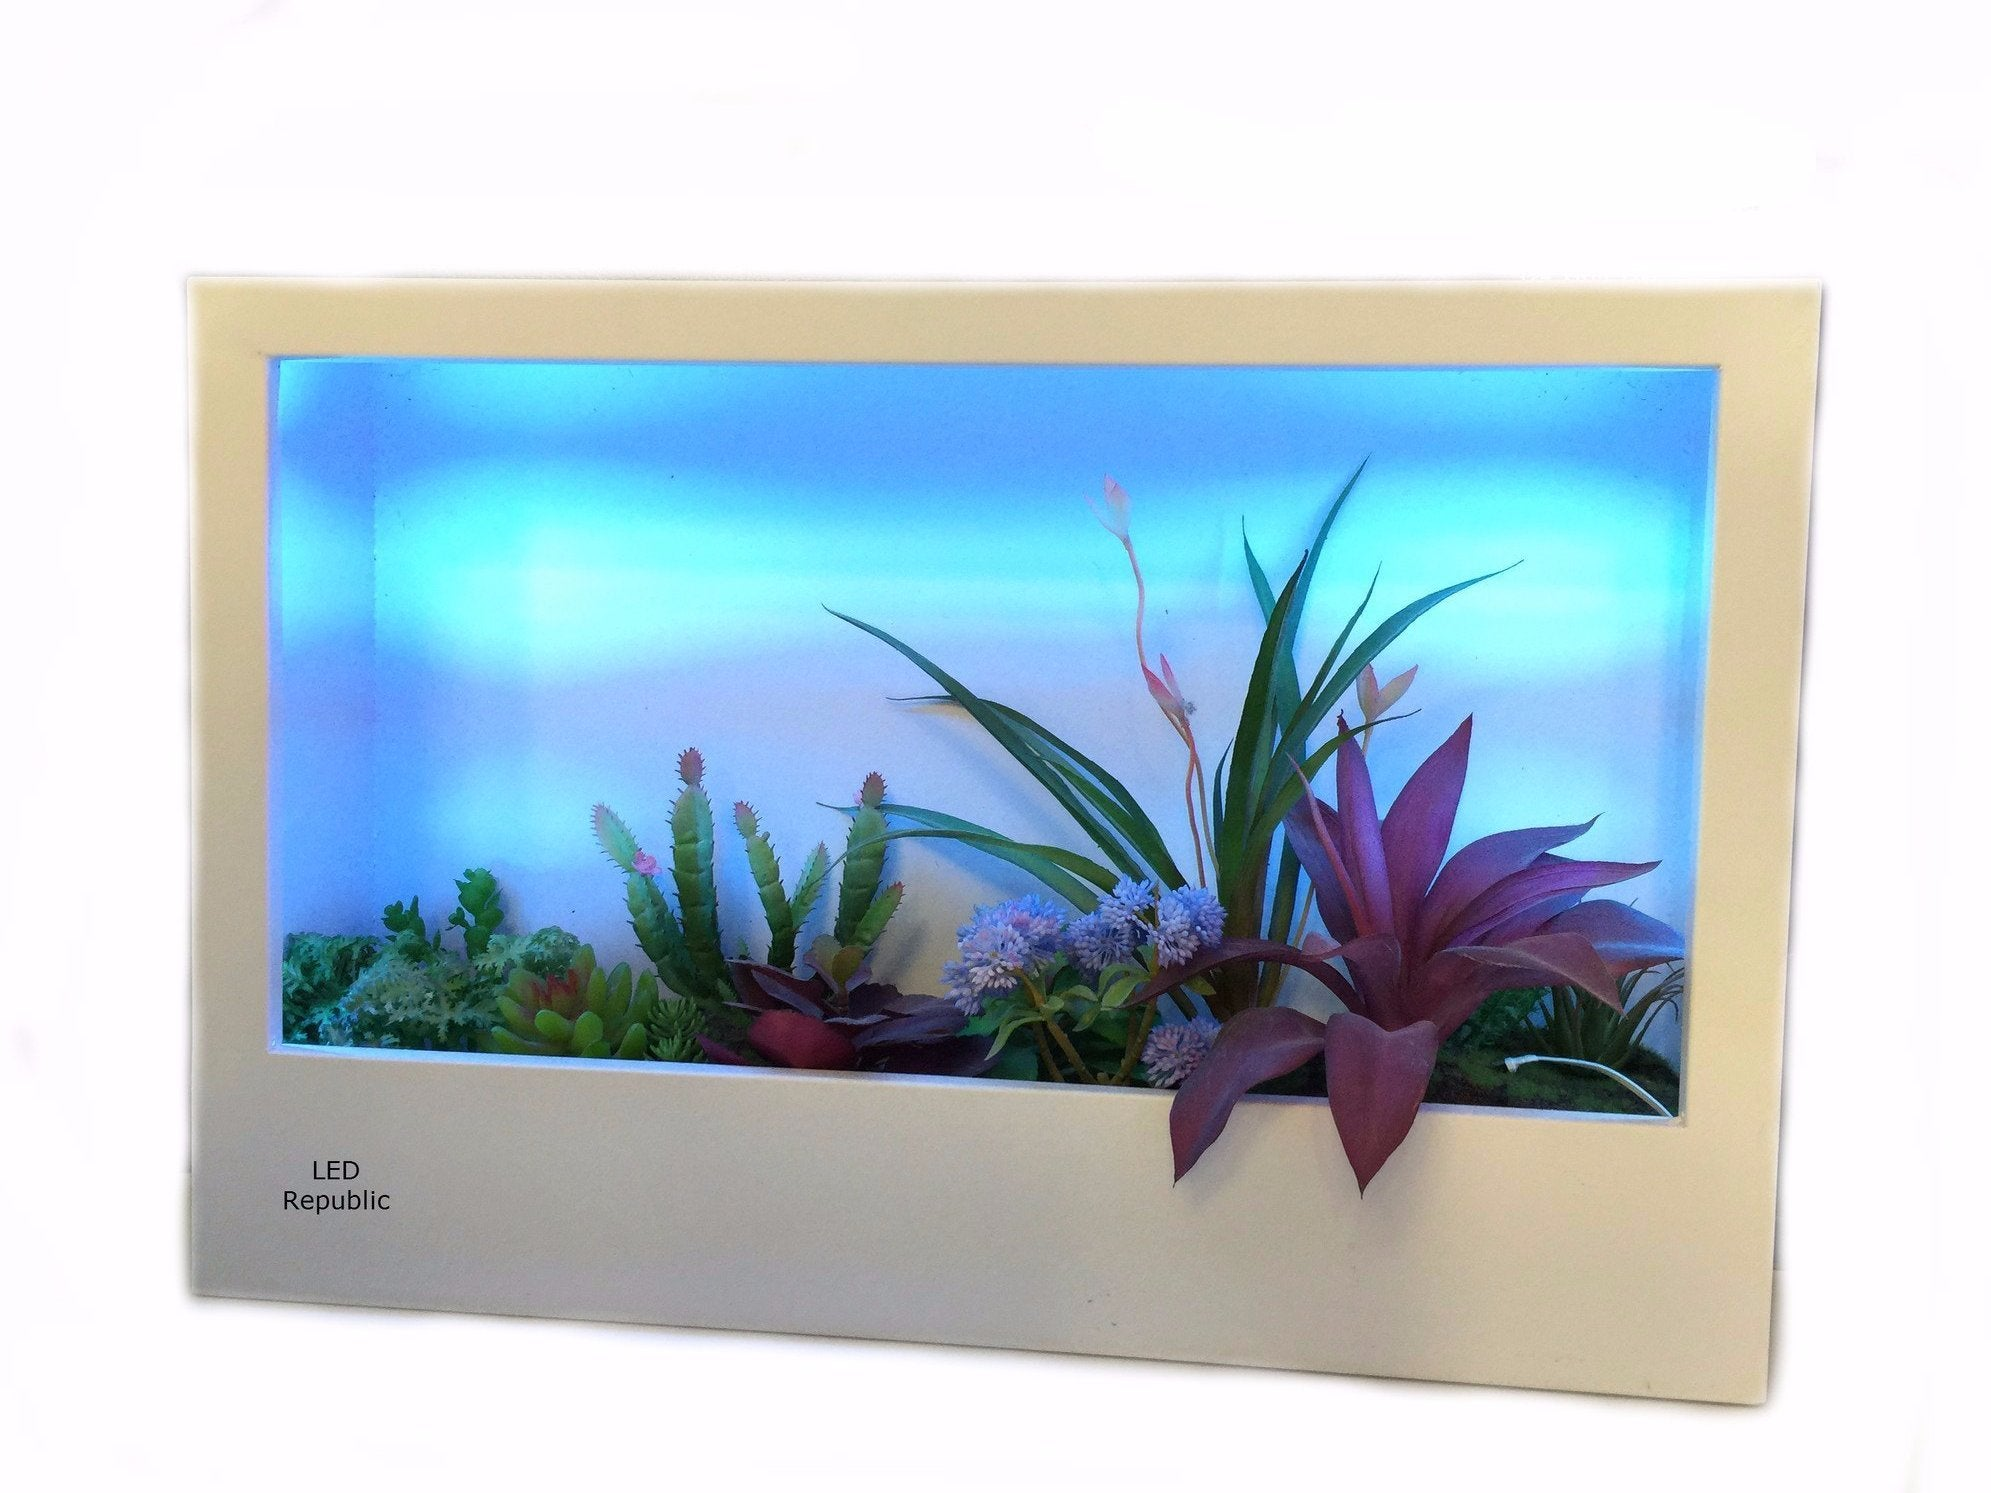 "HISUN LED 24""in ""Plant and Flower on the Wall"" LED Change Color Light"